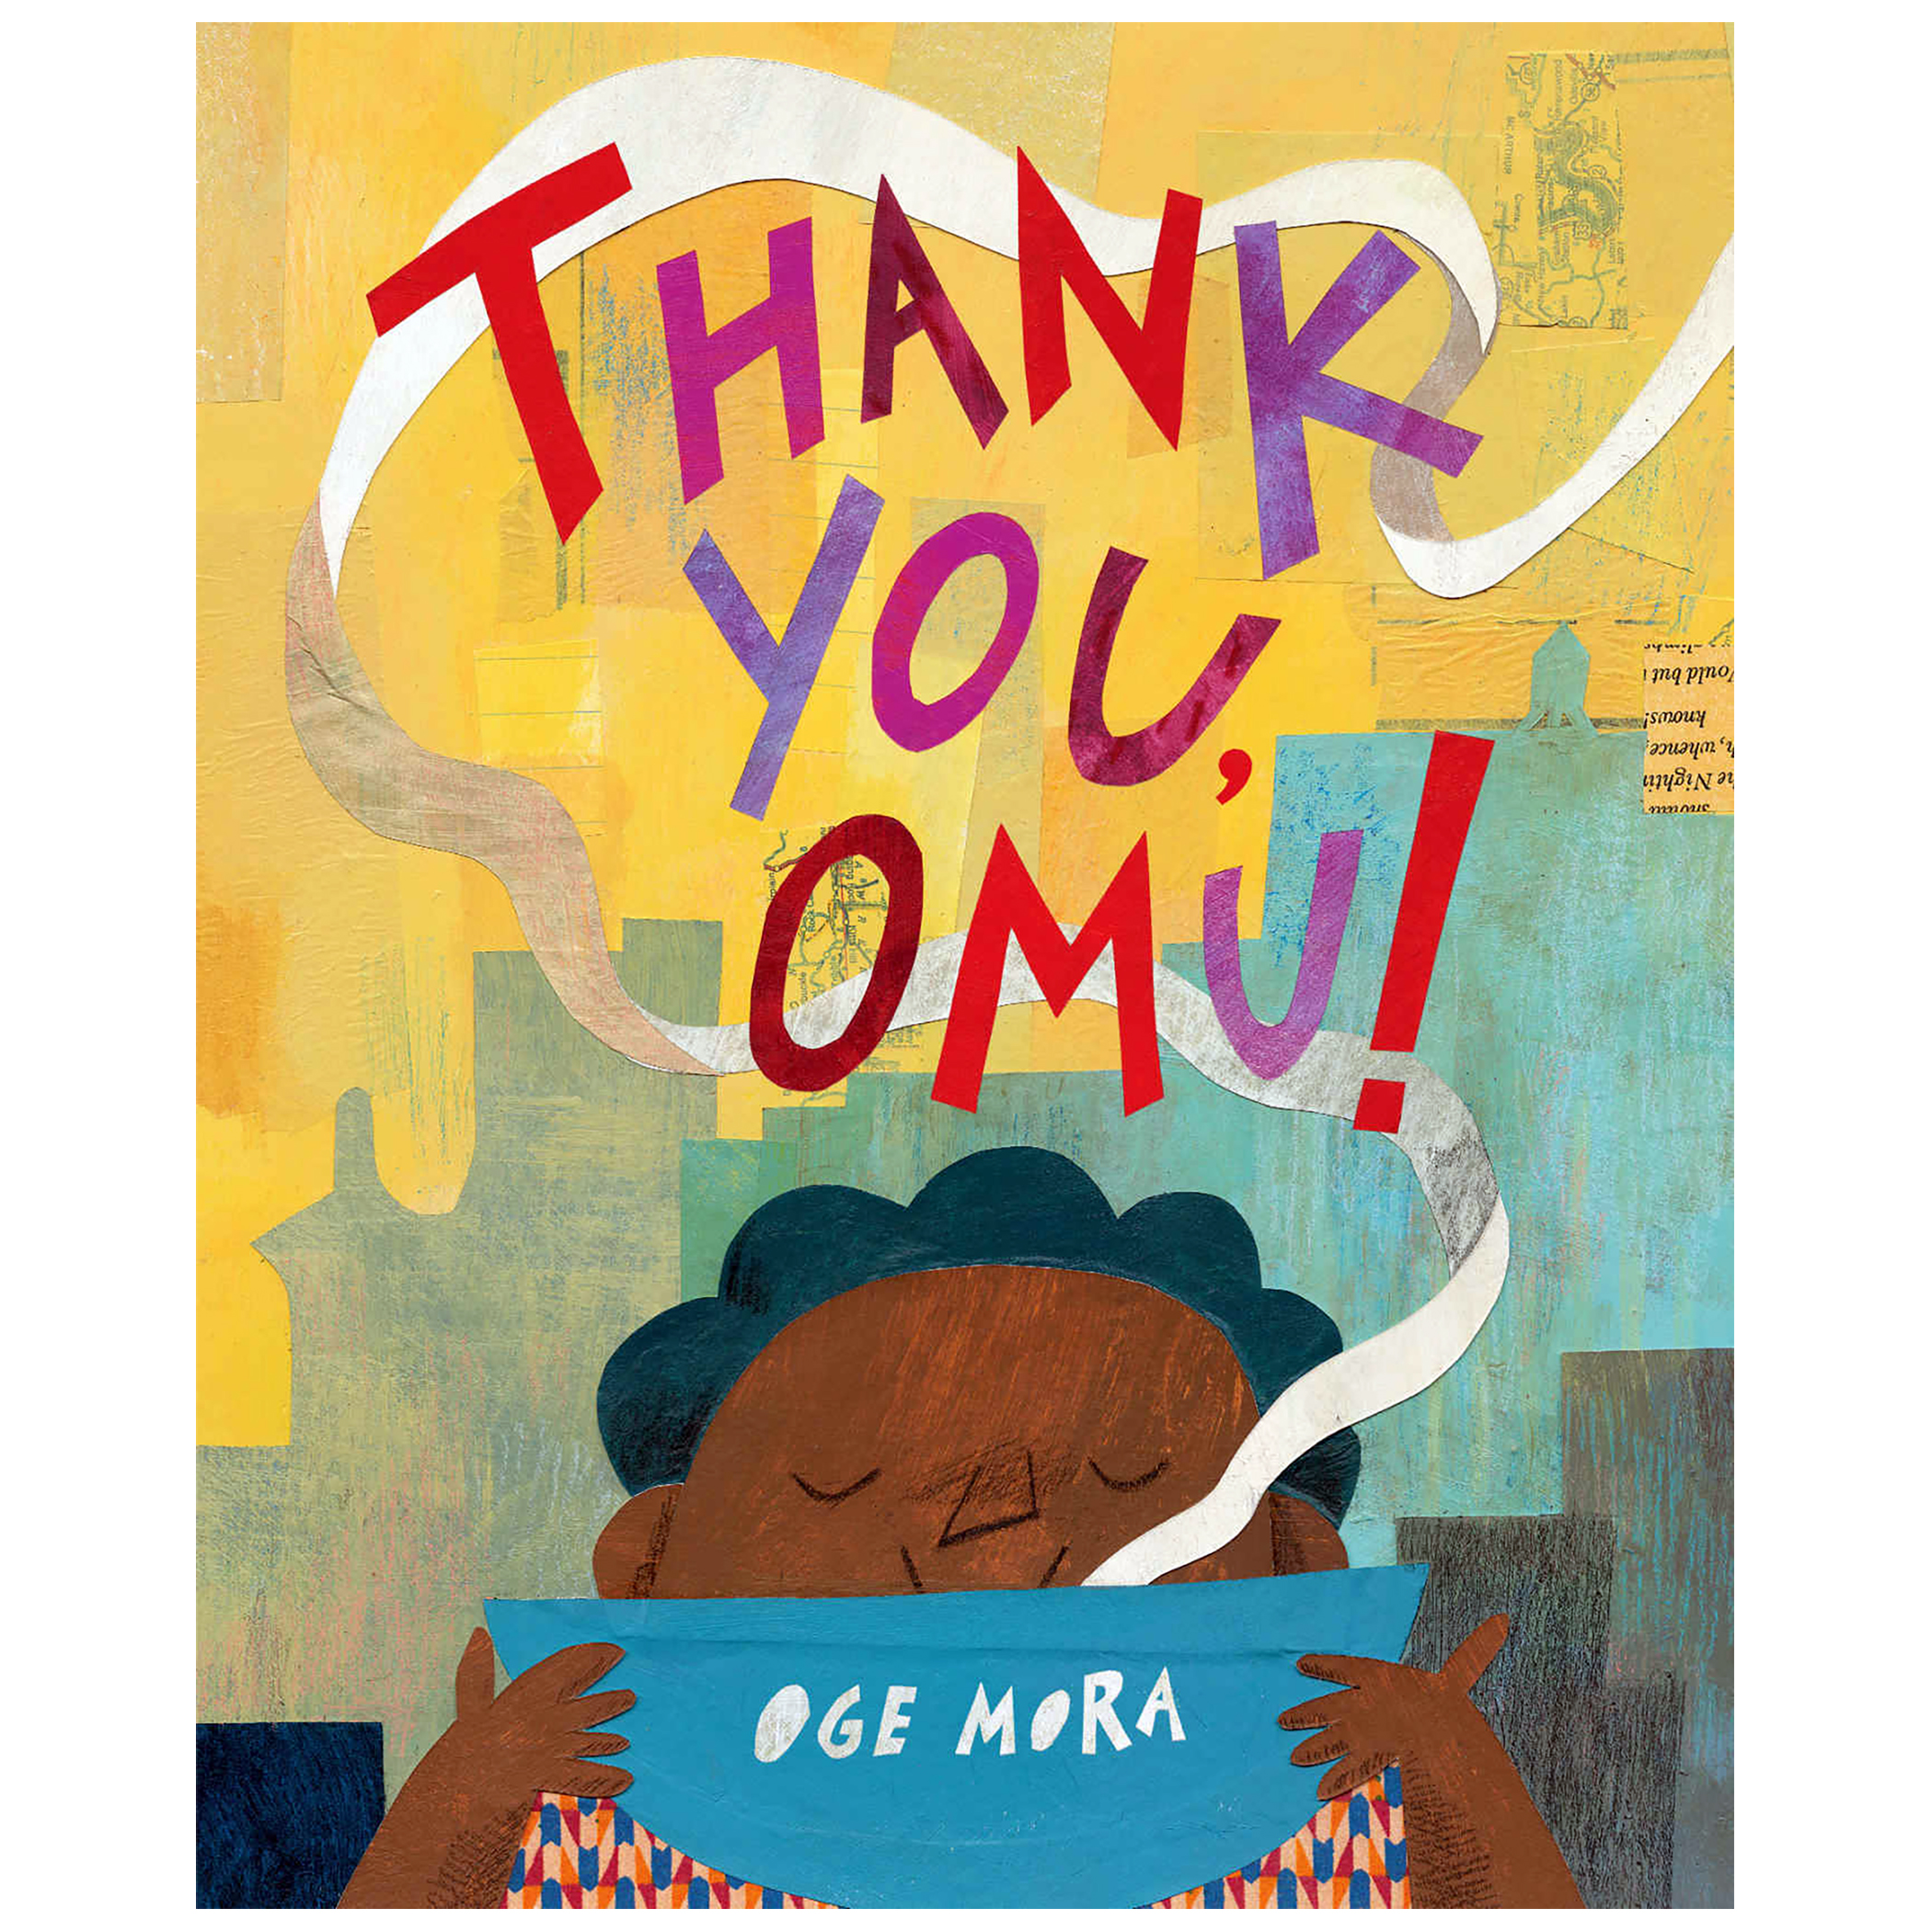 Thank You, Omu! book cover